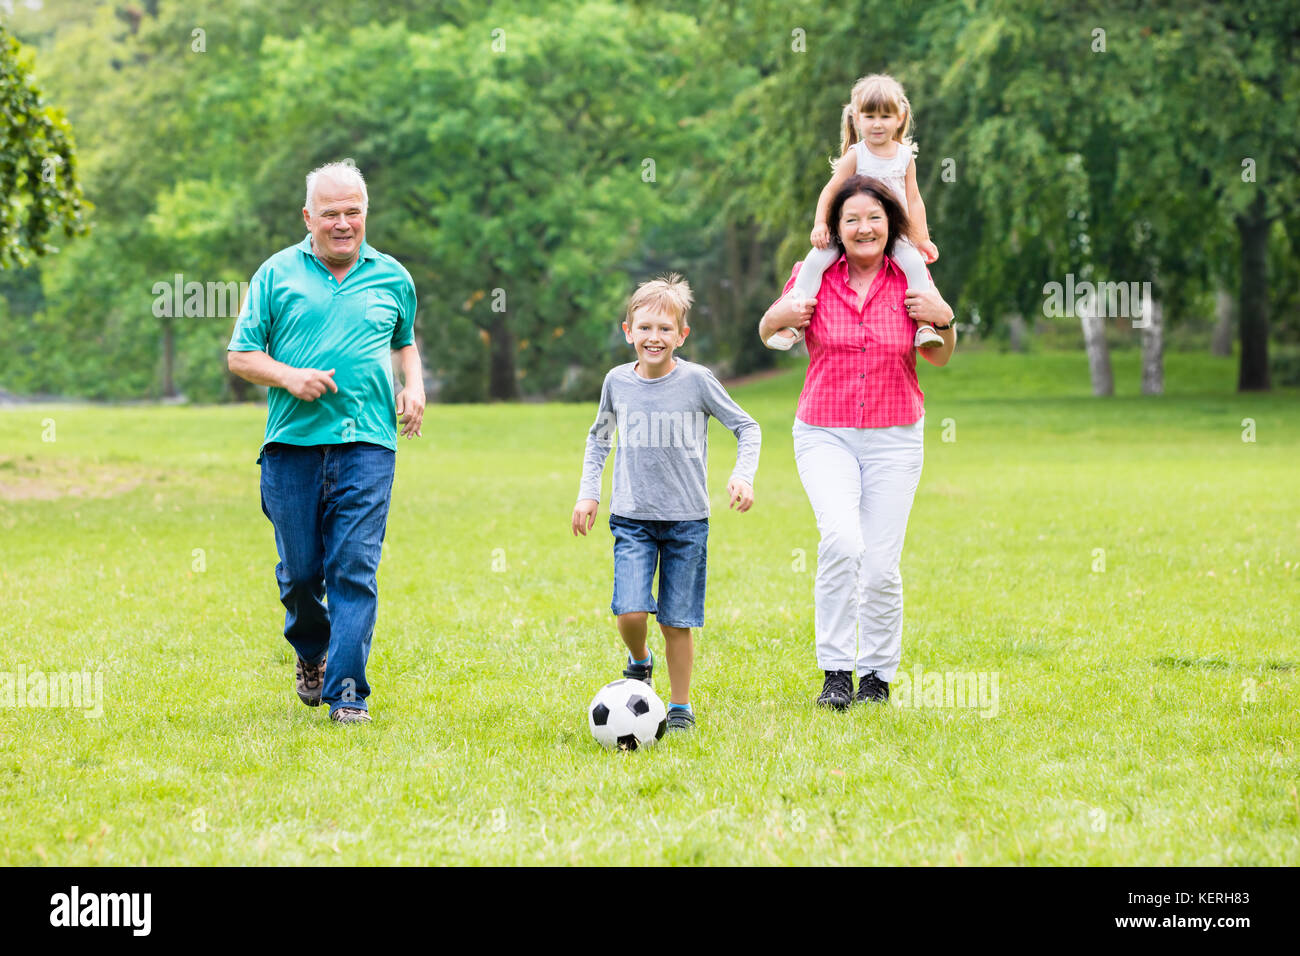 Happy Family Playing Soccer Game With Grandchildren Together In Park. Running For Ball - Stock Image